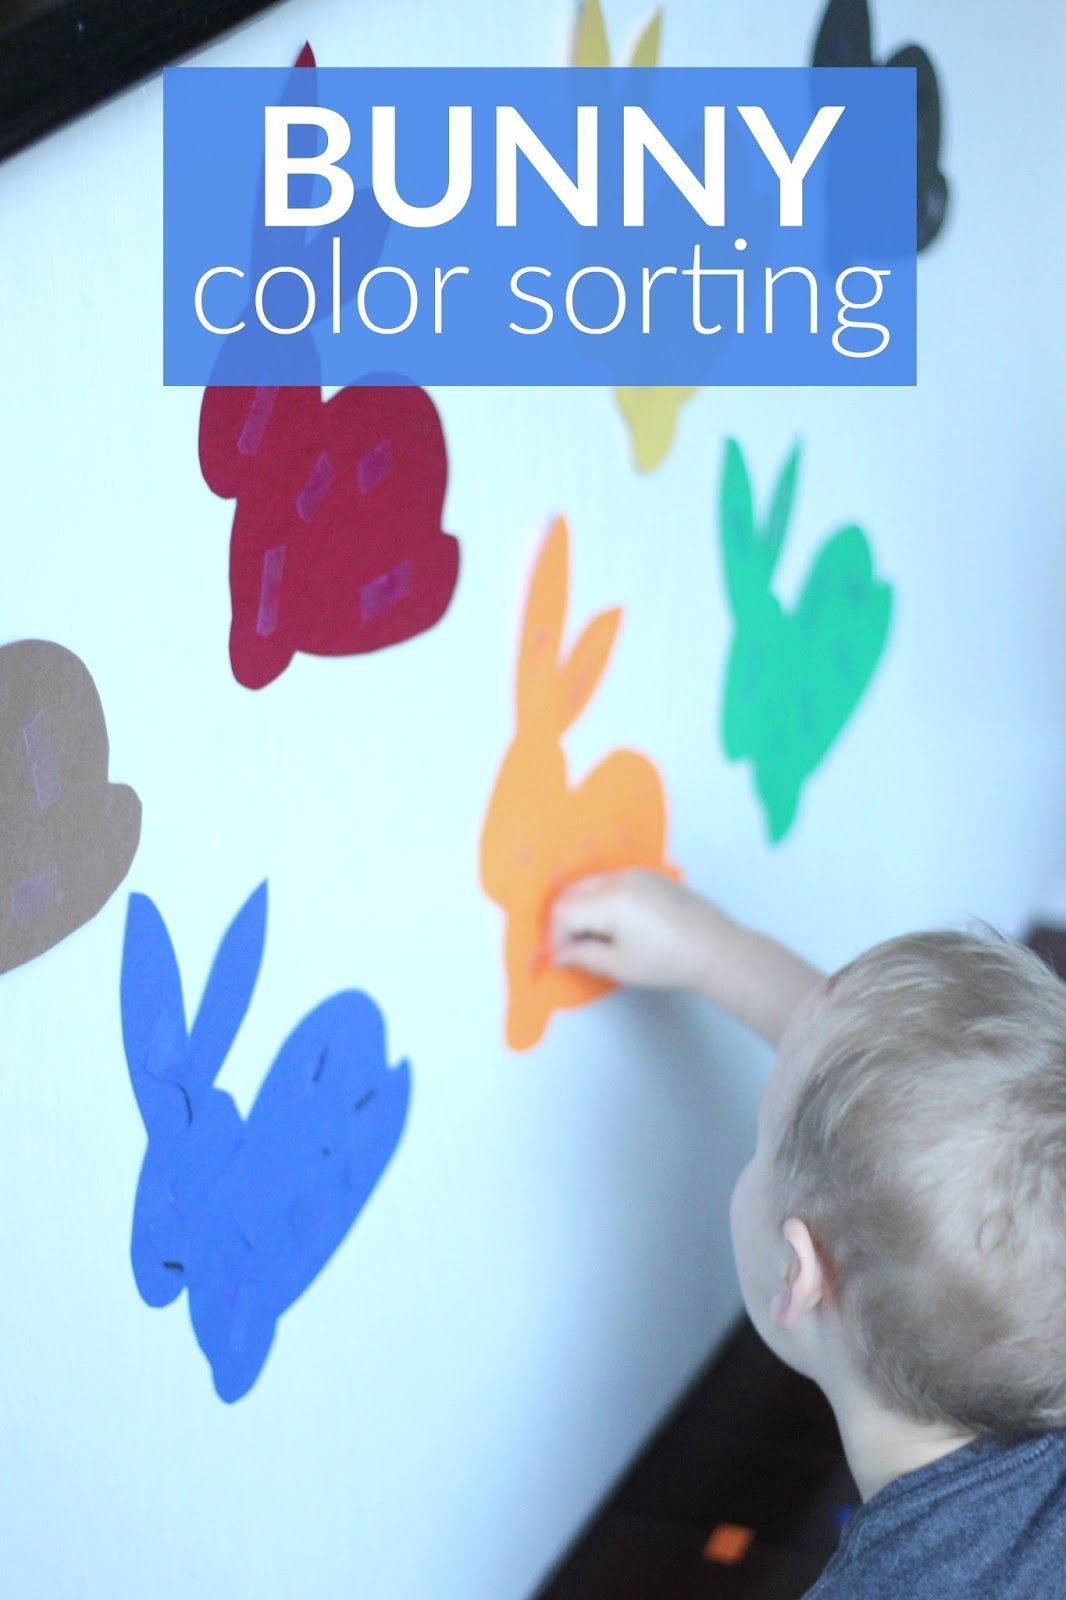 Bunny Color Sorting